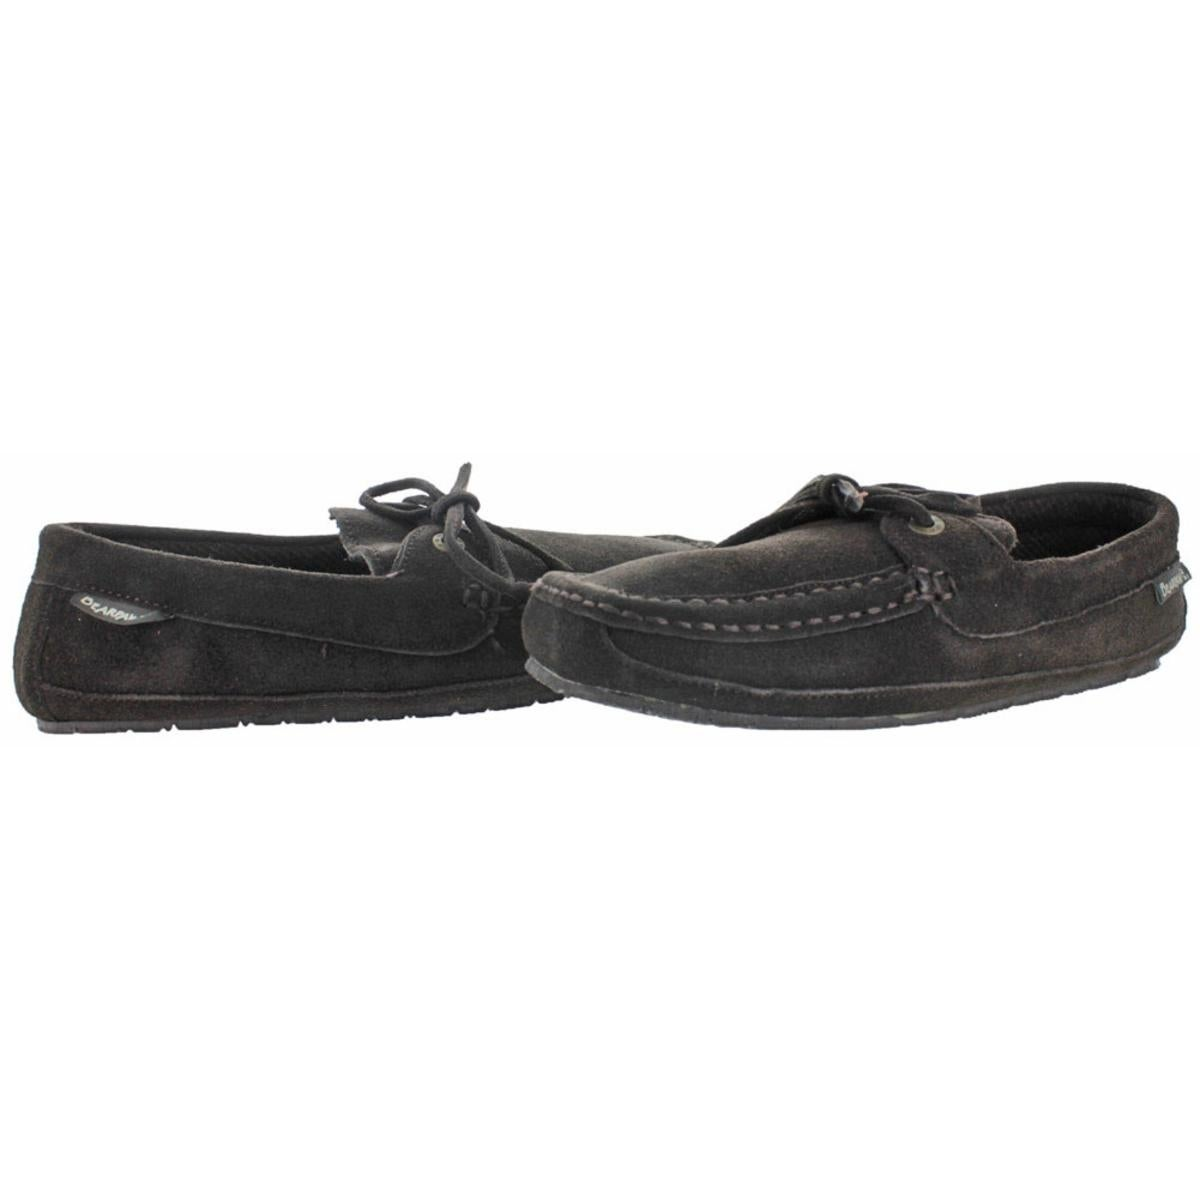 e9ccfc3885f0 Shop Bearpaw Mens Luke Moccasin Slippers Suede Wool Lined - Free Shipping  On Orders Over  45 - Overstock - 23613785